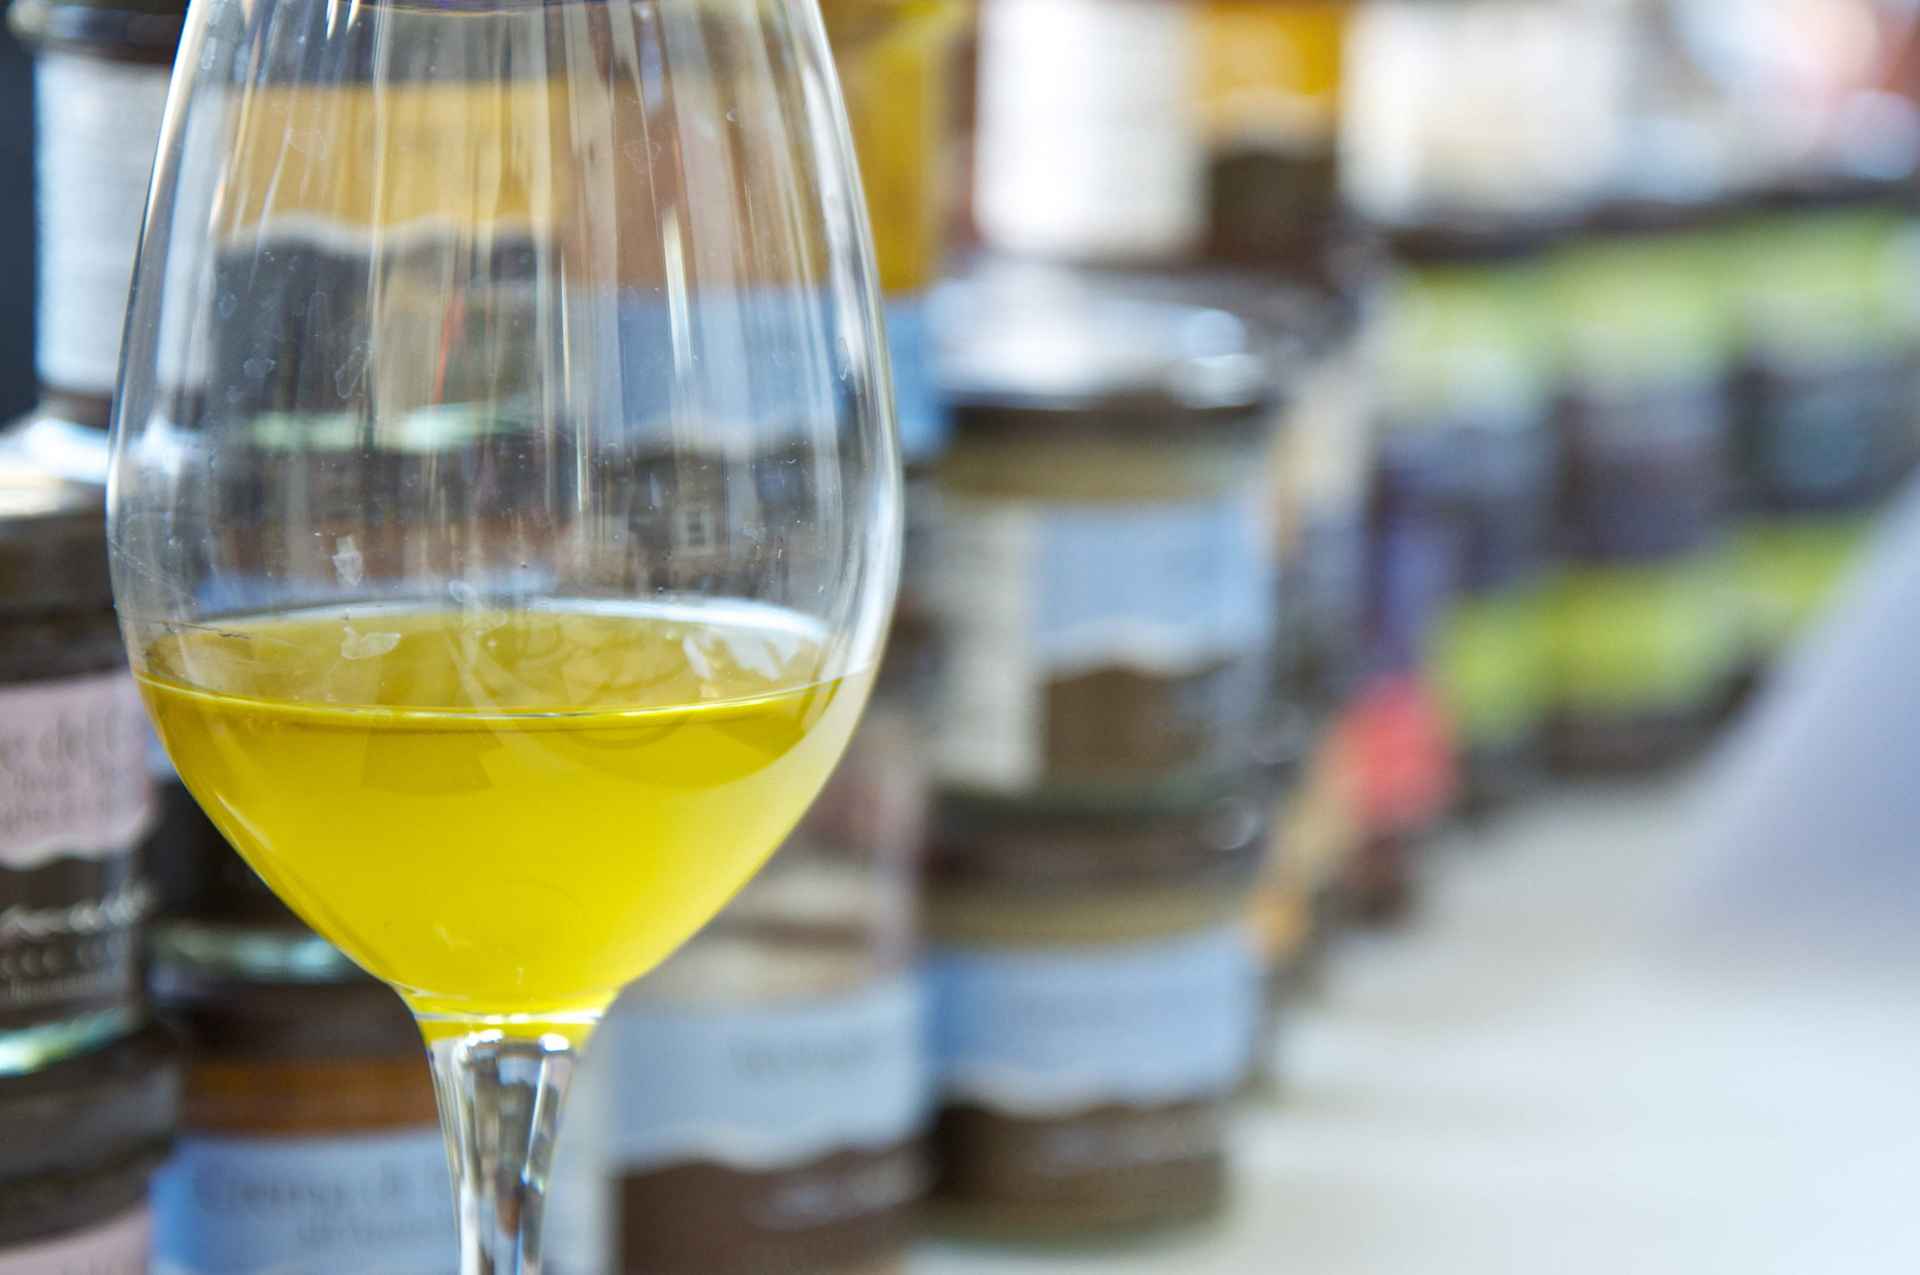 The crucial secret for enhancing the use and business of excellent extra virgin olive oils in restaurants and families is variety